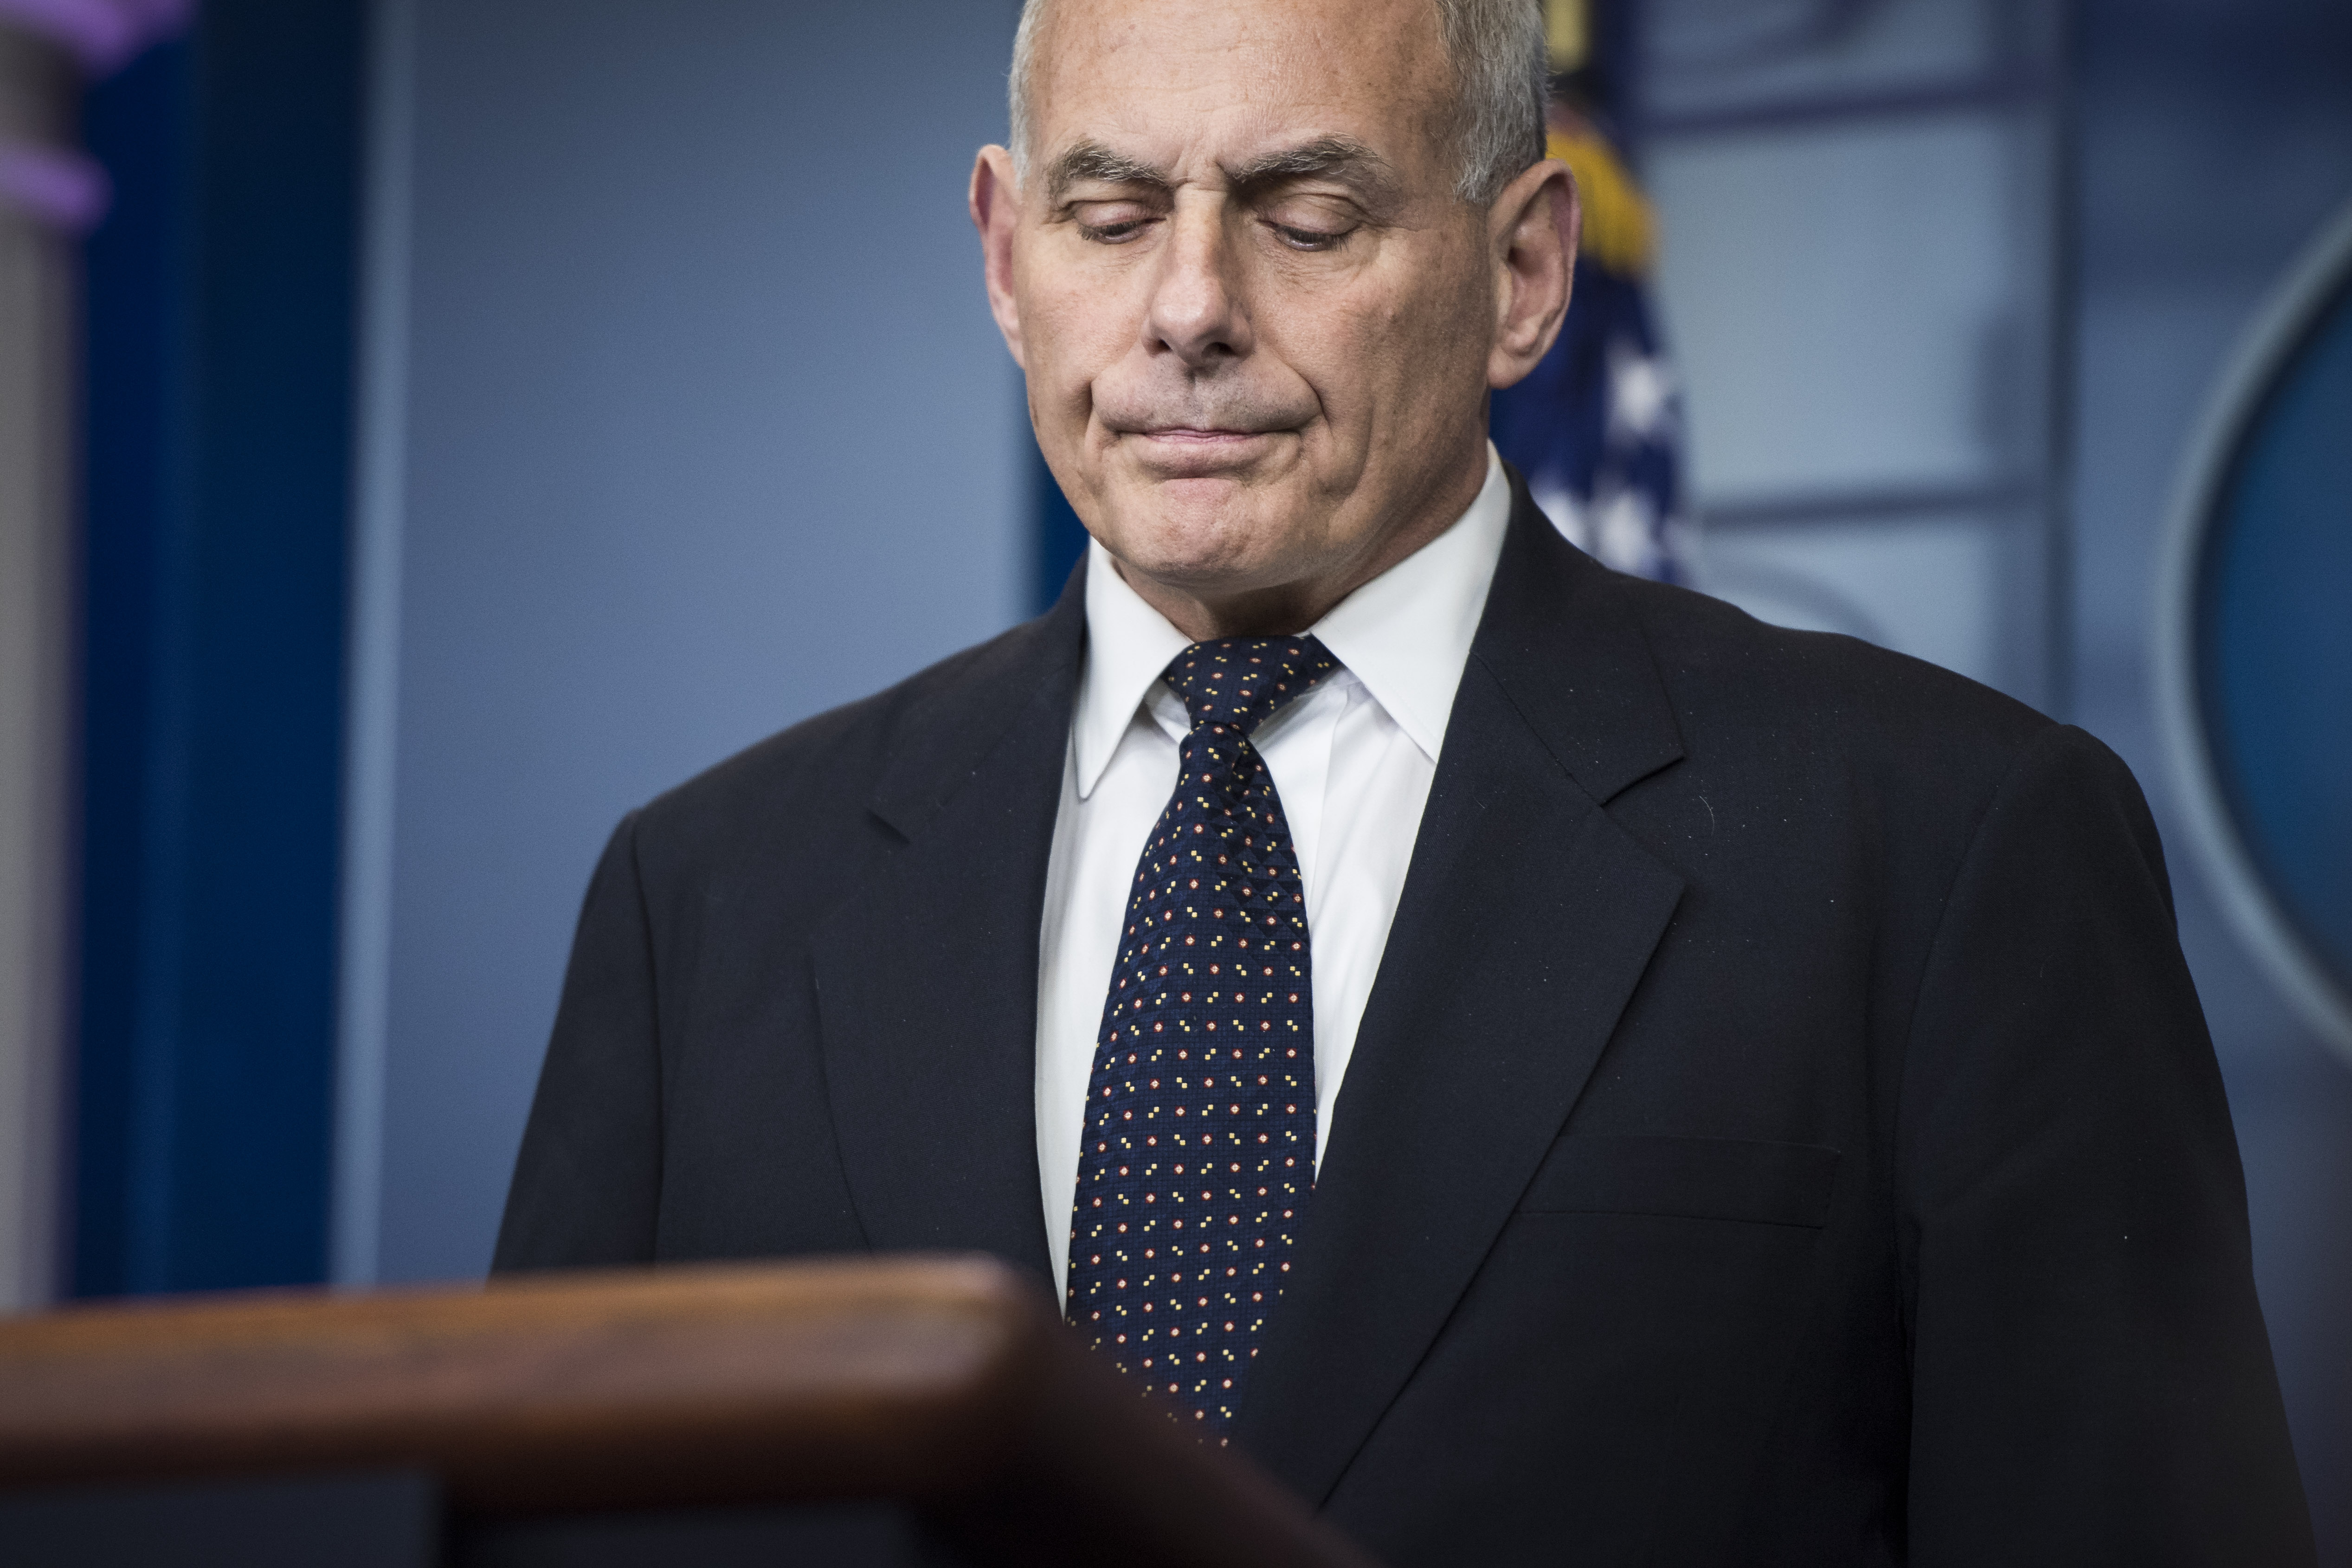 White House Chief of Staff John F. Kelly takes questions and talks about his son during the daily press briefing at the White House on Oct. 19, 2017.